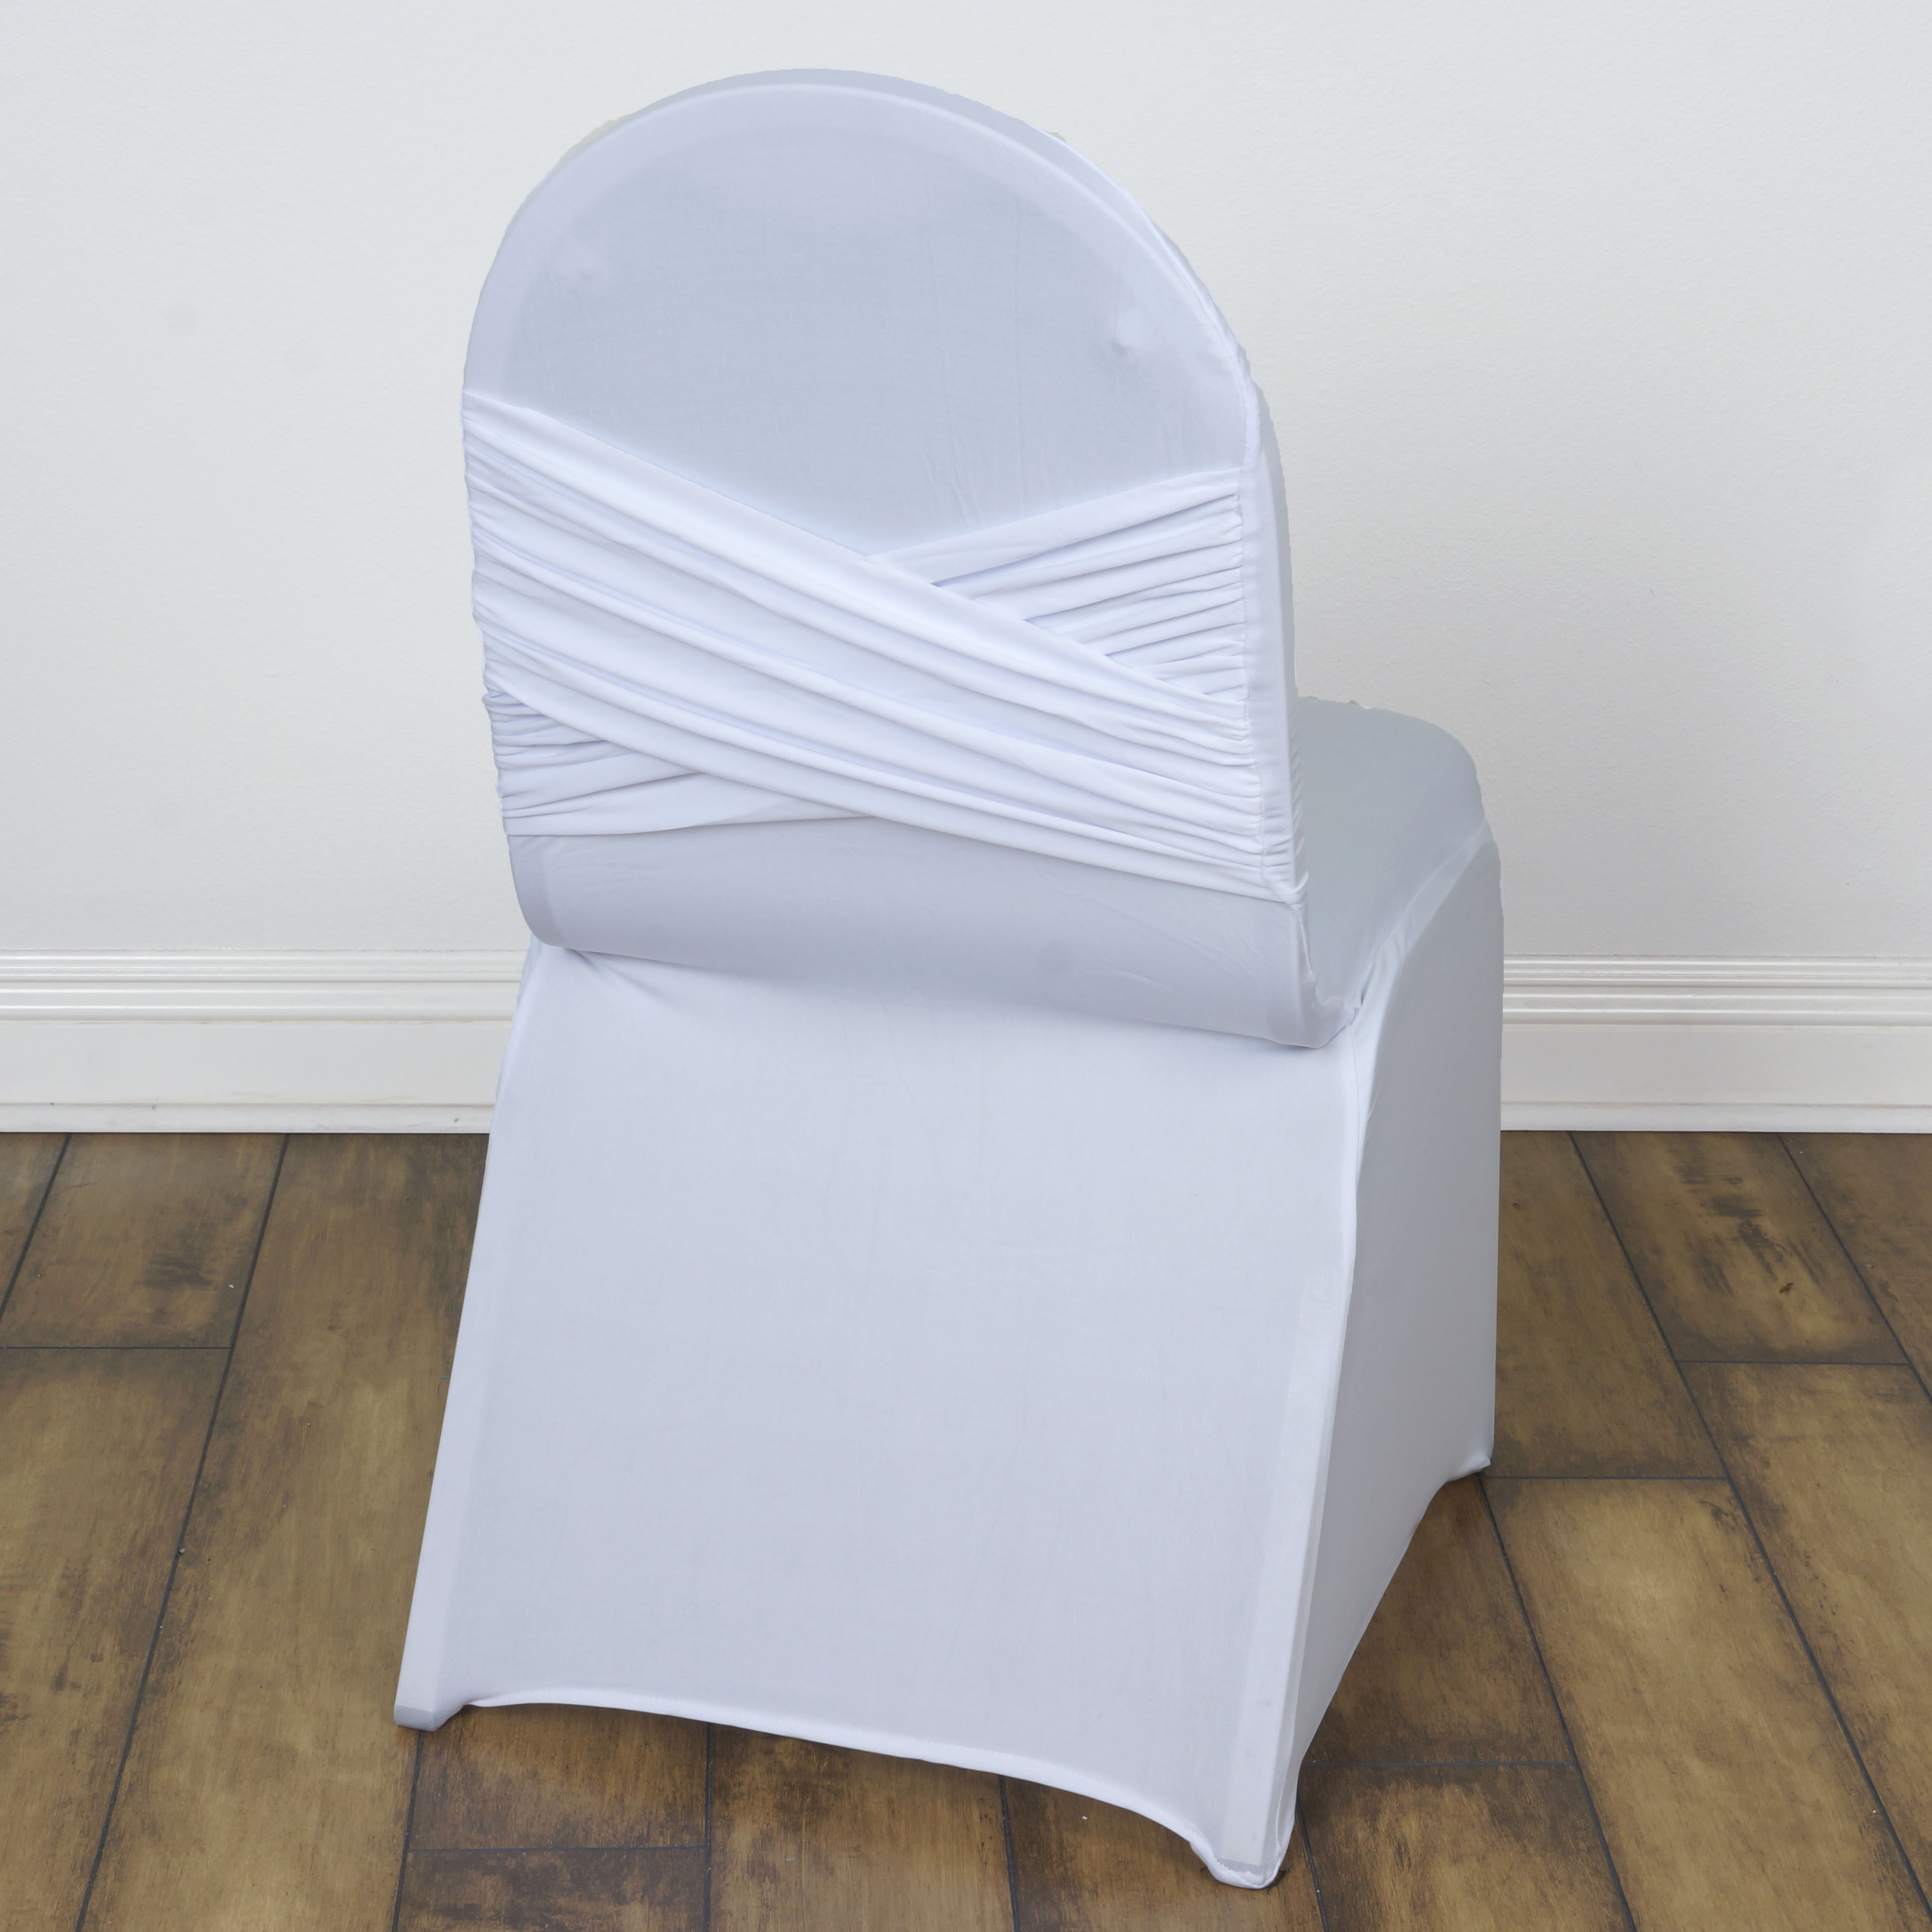 Astounding Details About 50 Pcs Madrid Banquet Chair Covers With Crisscross Design Wedding Decorations Machost Co Dining Chair Design Ideas Machostcouk